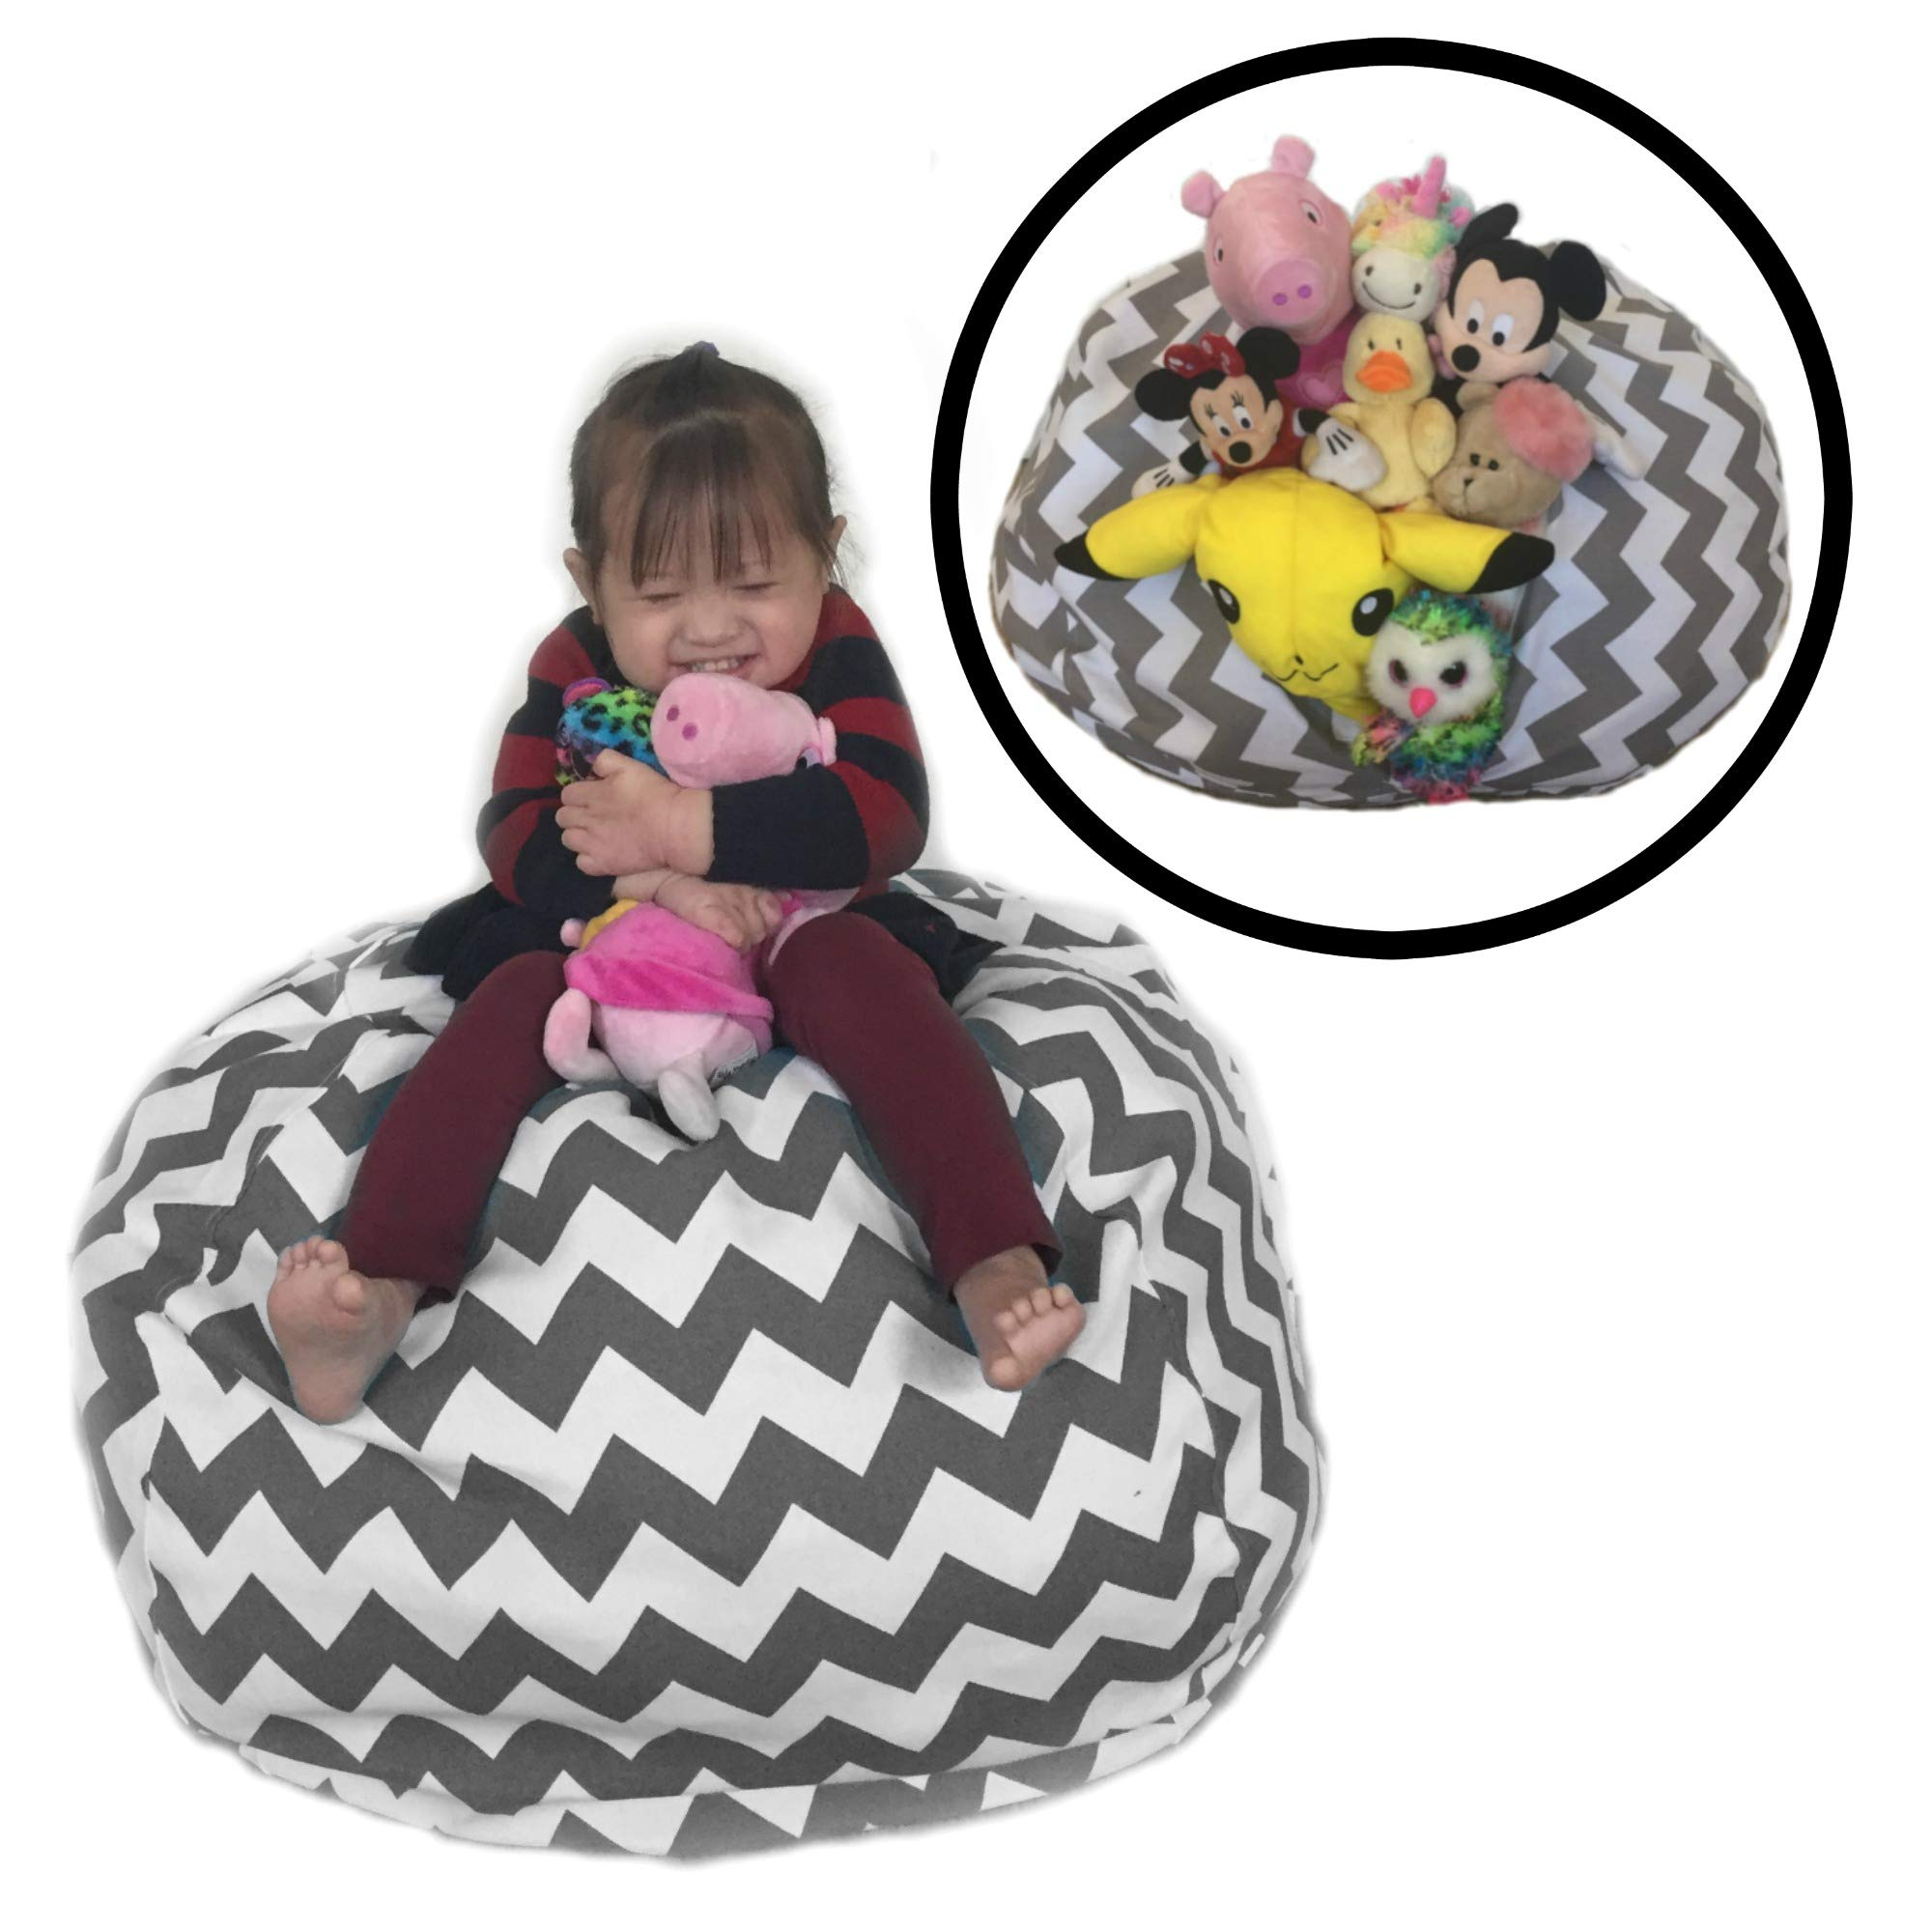 """Tidy 'N Comfy Stuffed Animal Storage Bean Bag Chair, EXTRA LARGE 38"""" GREY, GRAY Chevron Zigzag Print, Reinforced Seams, Stylish Storage for Soft Toys, Towels, Sweaters, Blankets. (Toys NOT included)"""